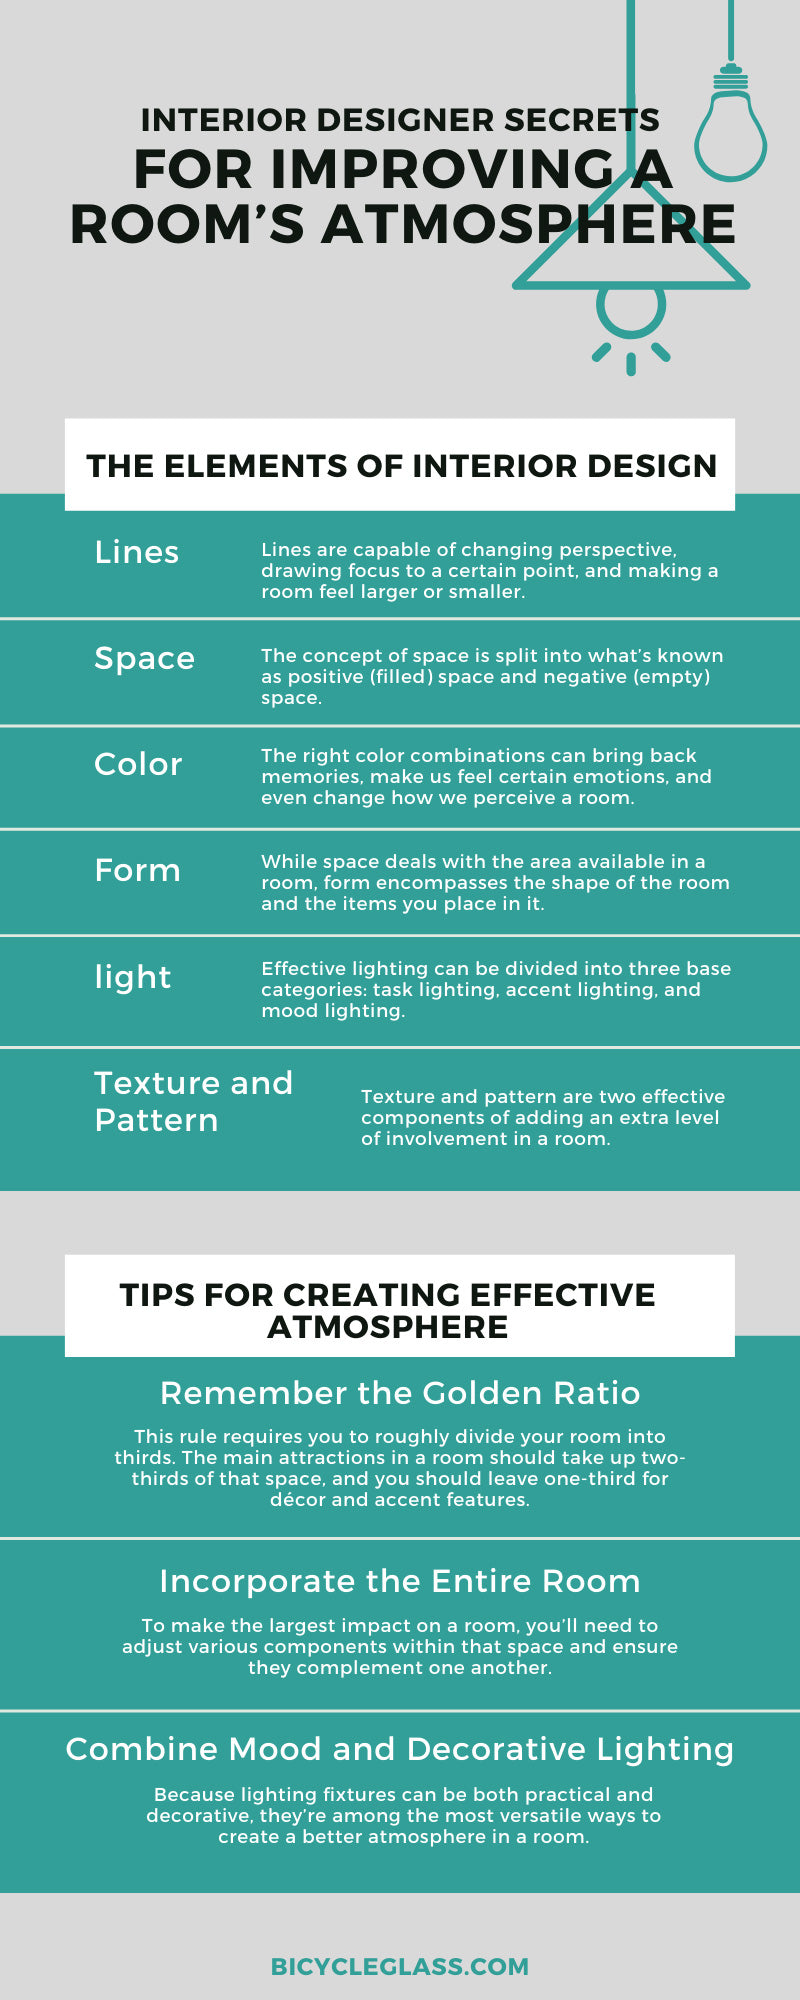 Interior Designer Secrets for Improving a Room's Atmosphere